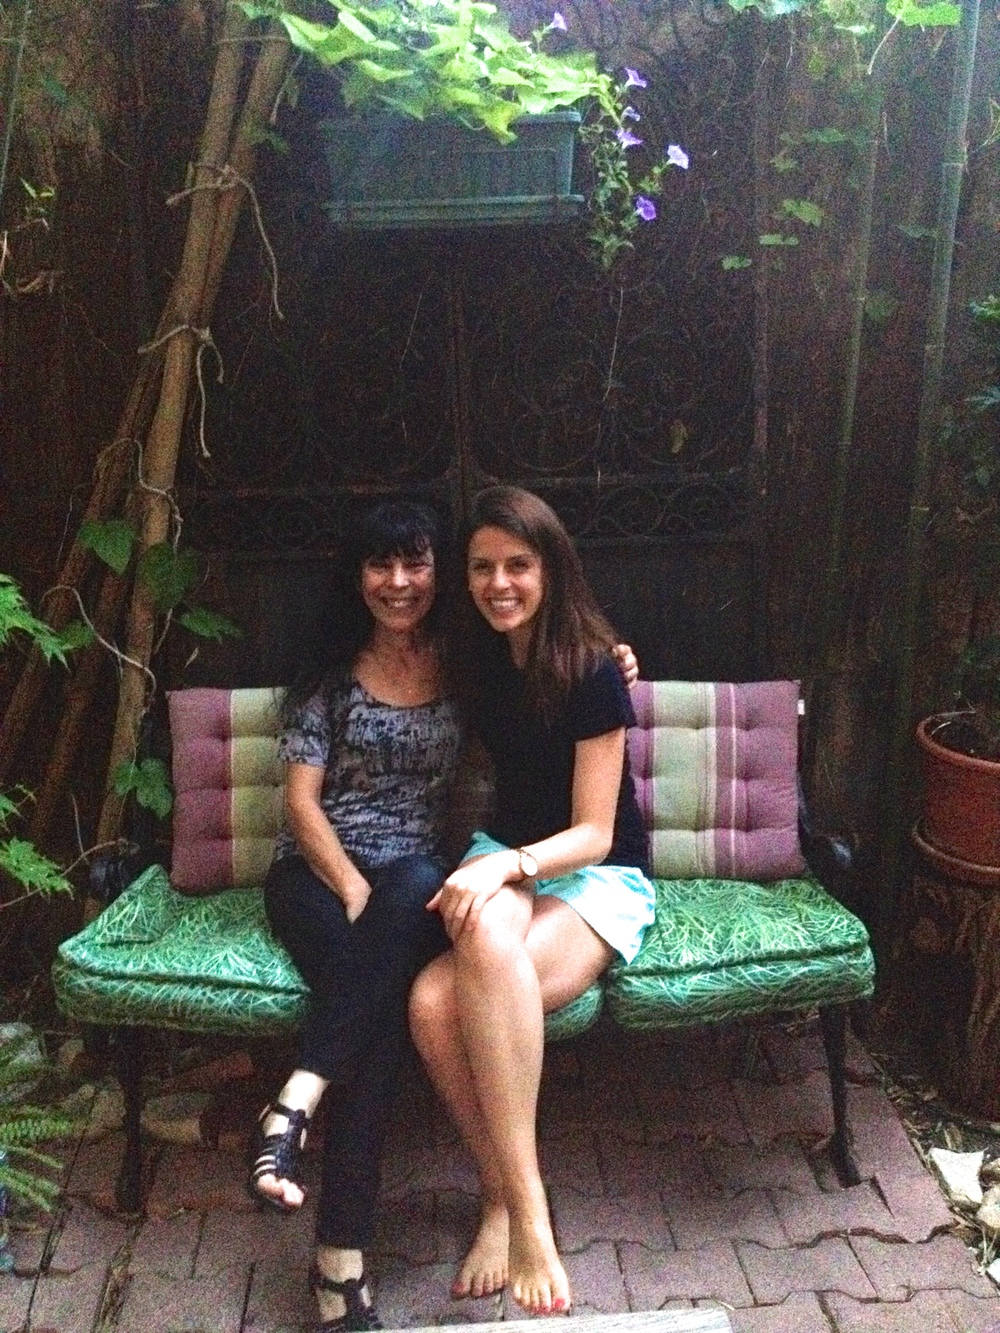 Reunited! Michèle and me in her garden.